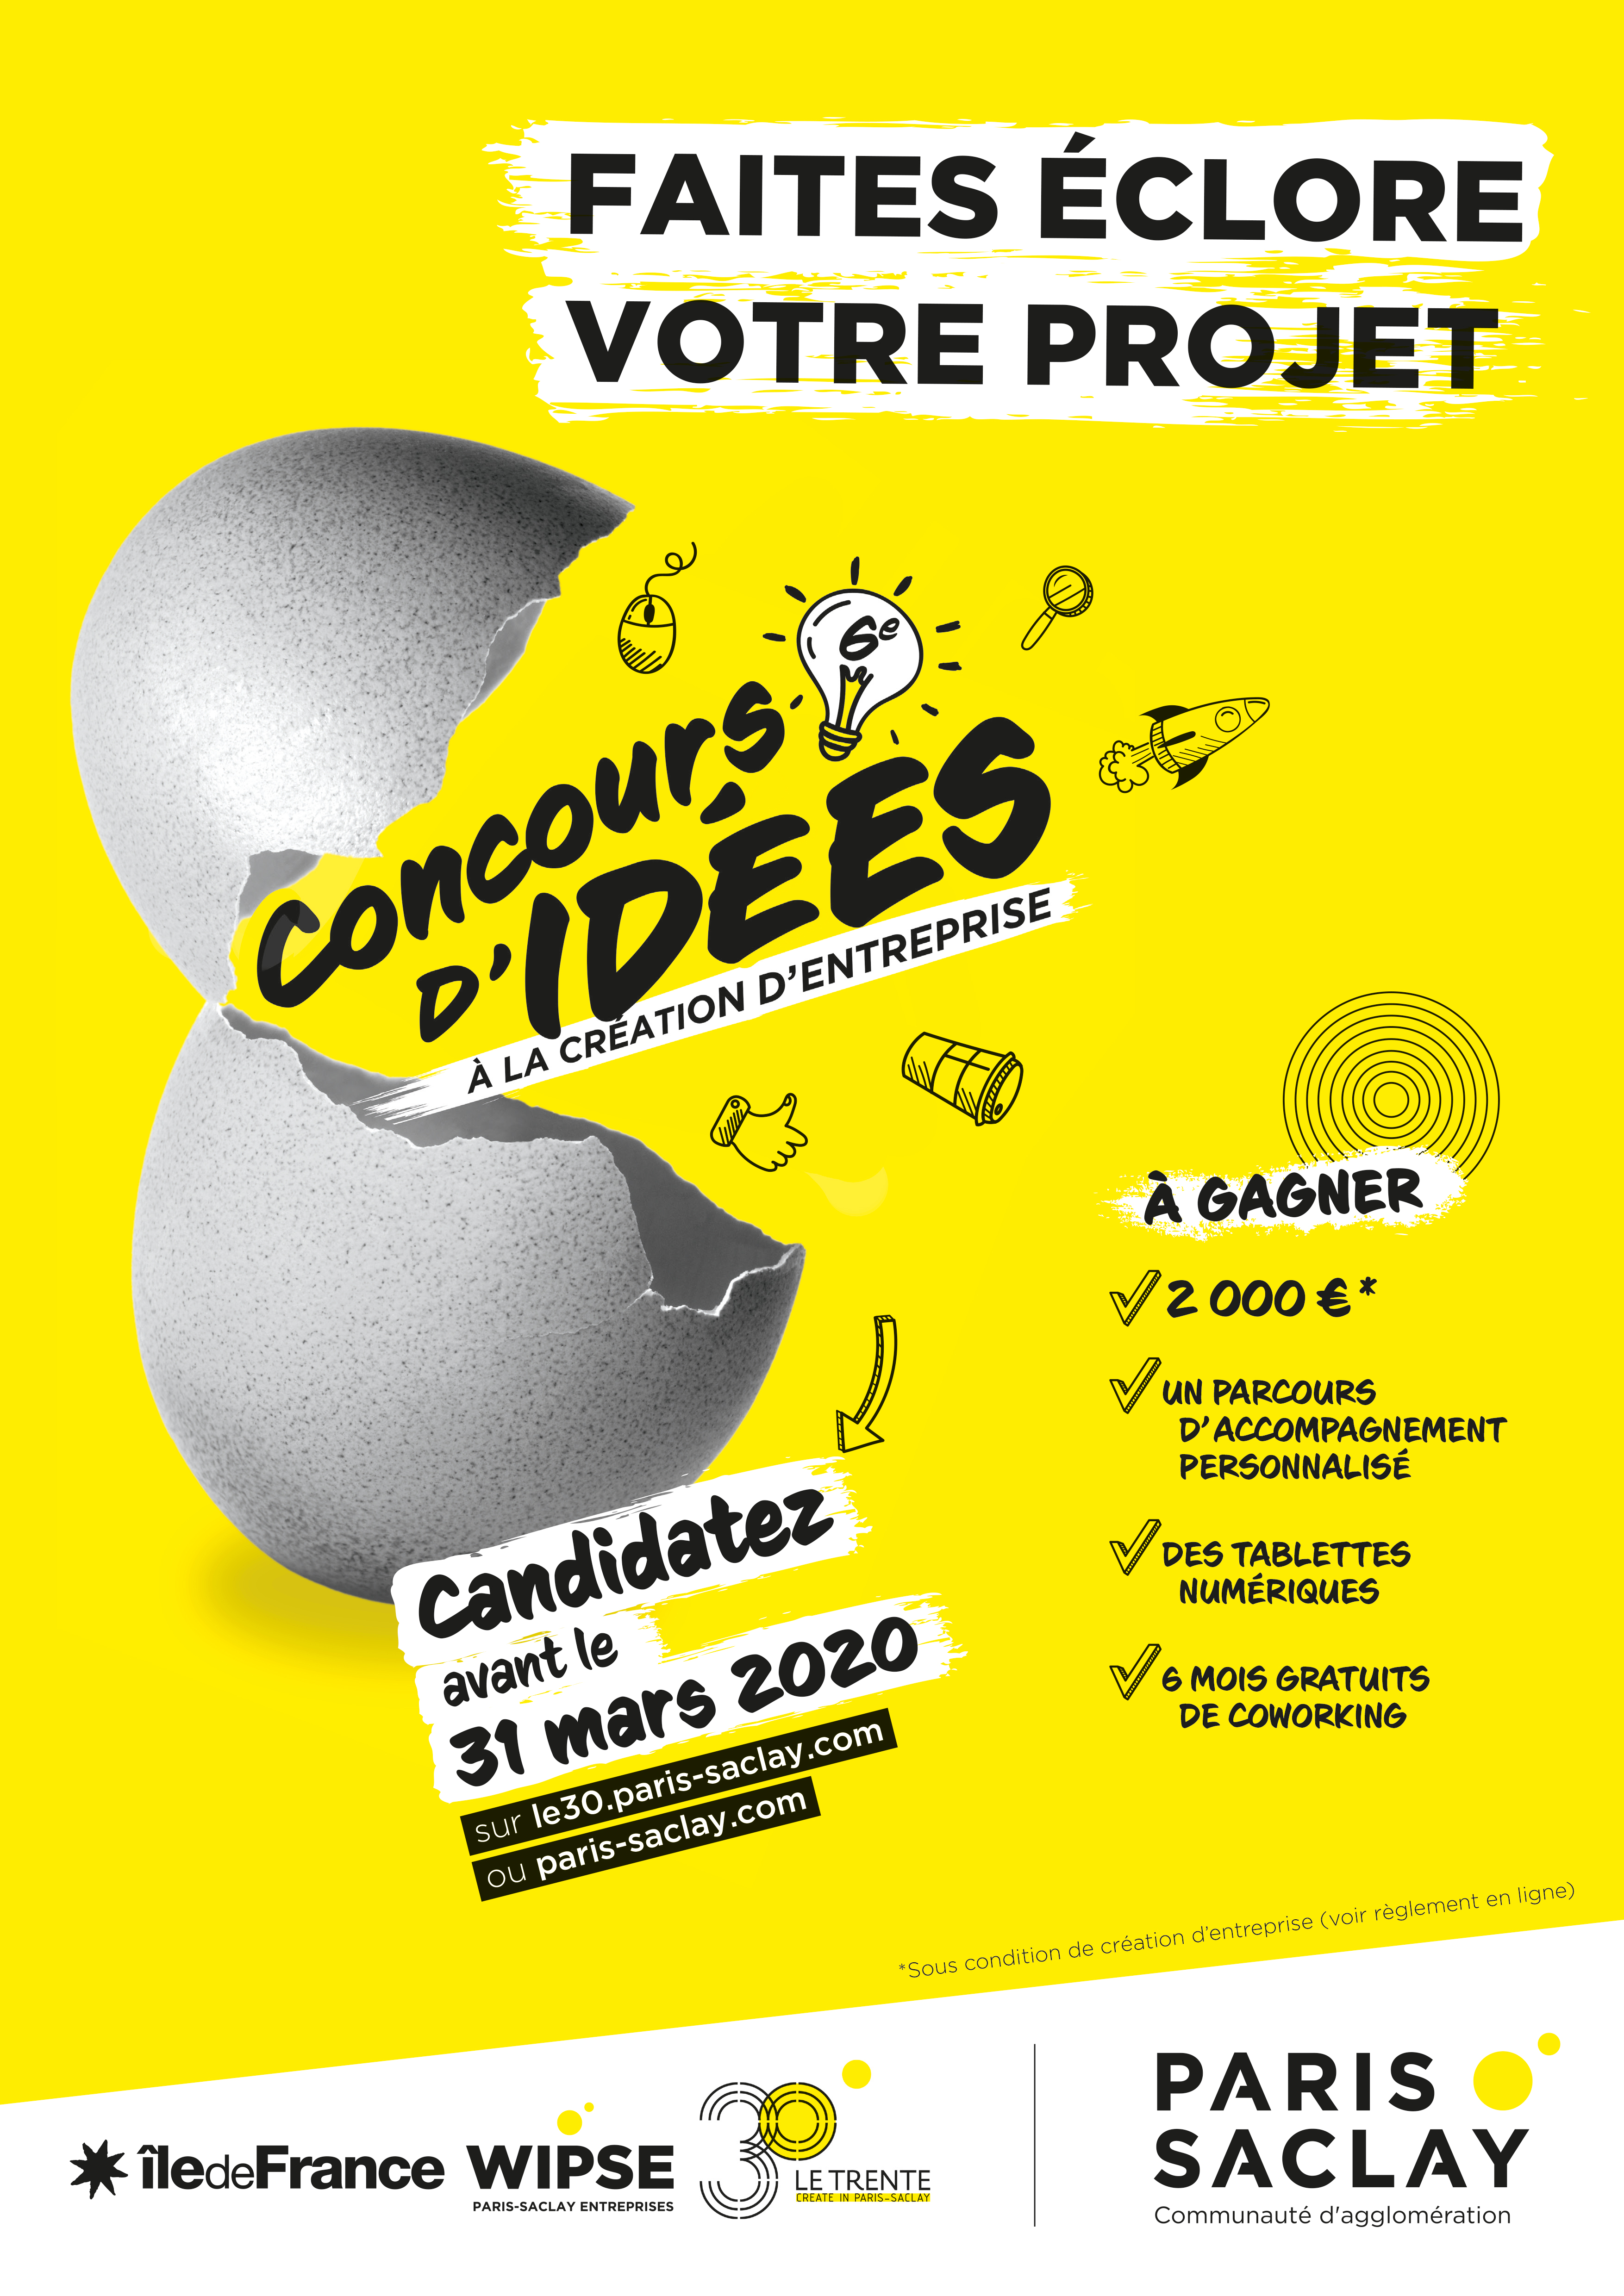 affiche A3 concours idees 2020 stc